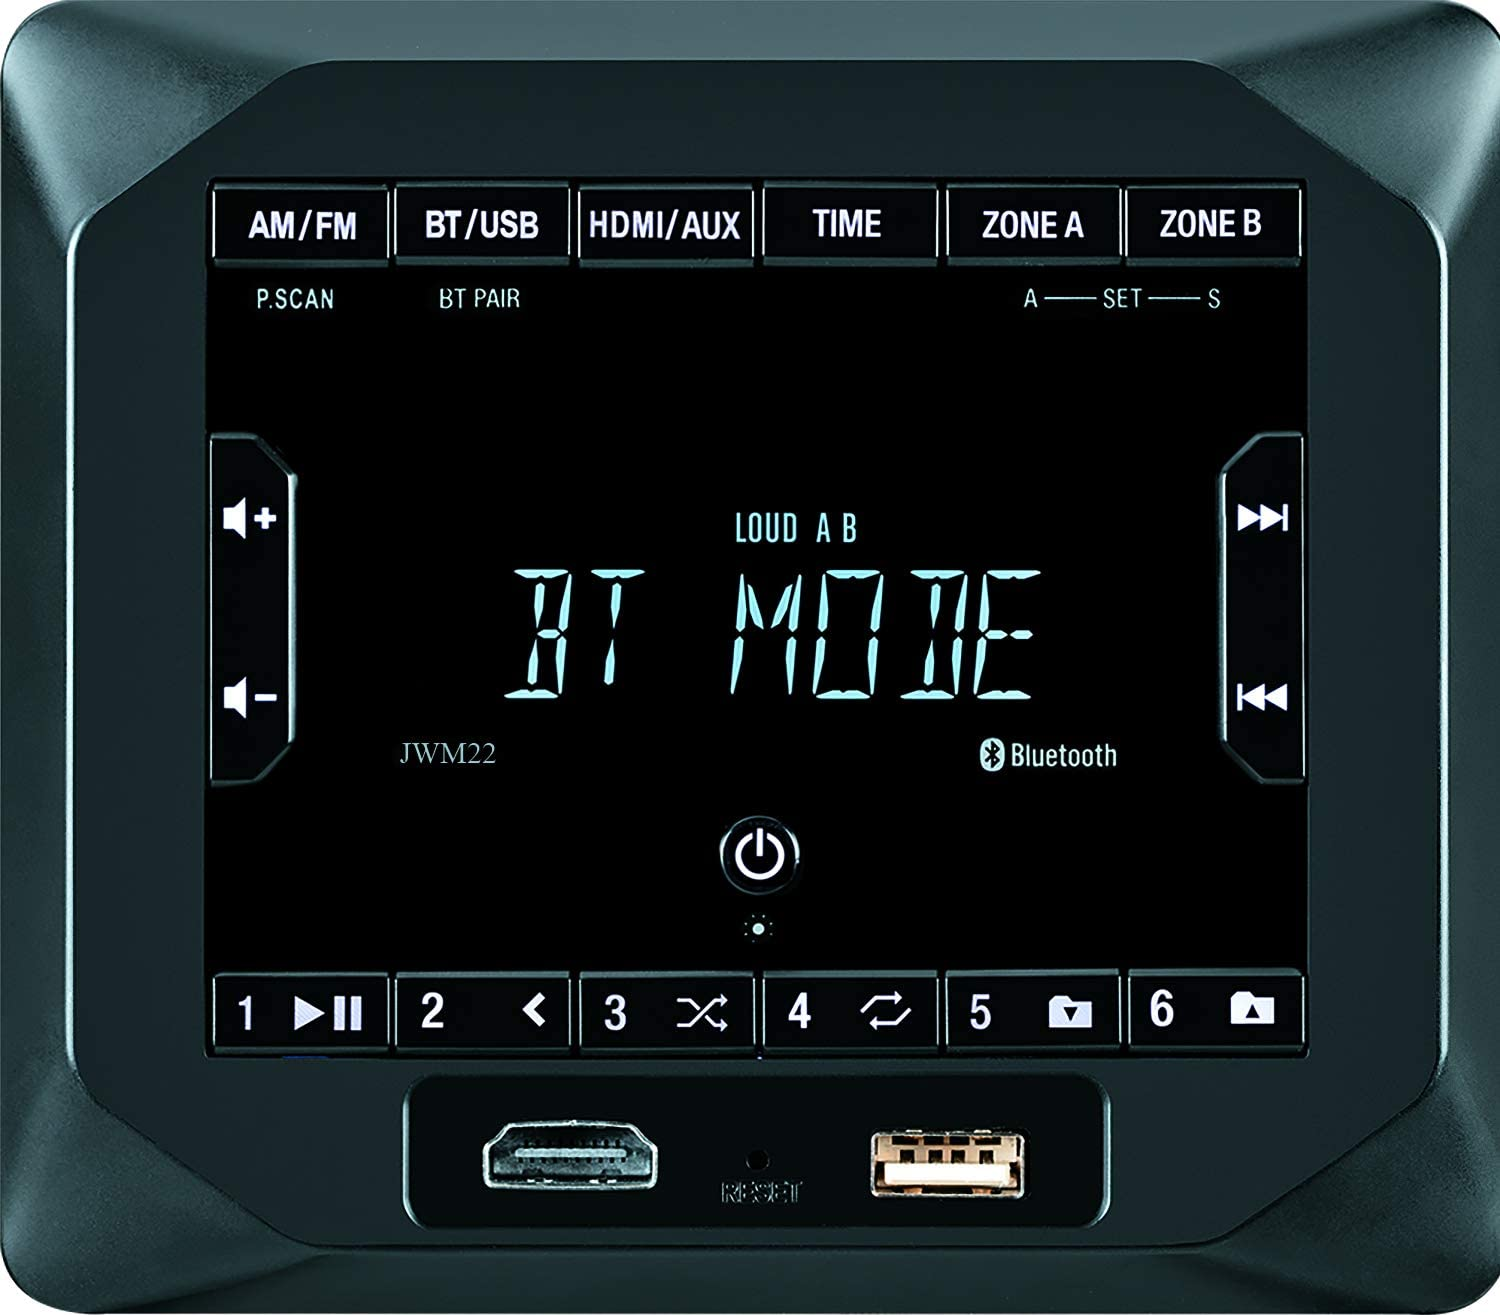 Jensen JWM22 2-Speaker Zones AM/FM|BT|HDMI|AUX Cube Wall Mount Stereo, Speaker Output 4X 6 Watt, 30 Station Presets (18FM/12AM), Receives Bluetooth Audio (A2DP) and Controls (AVRCP) from Devices